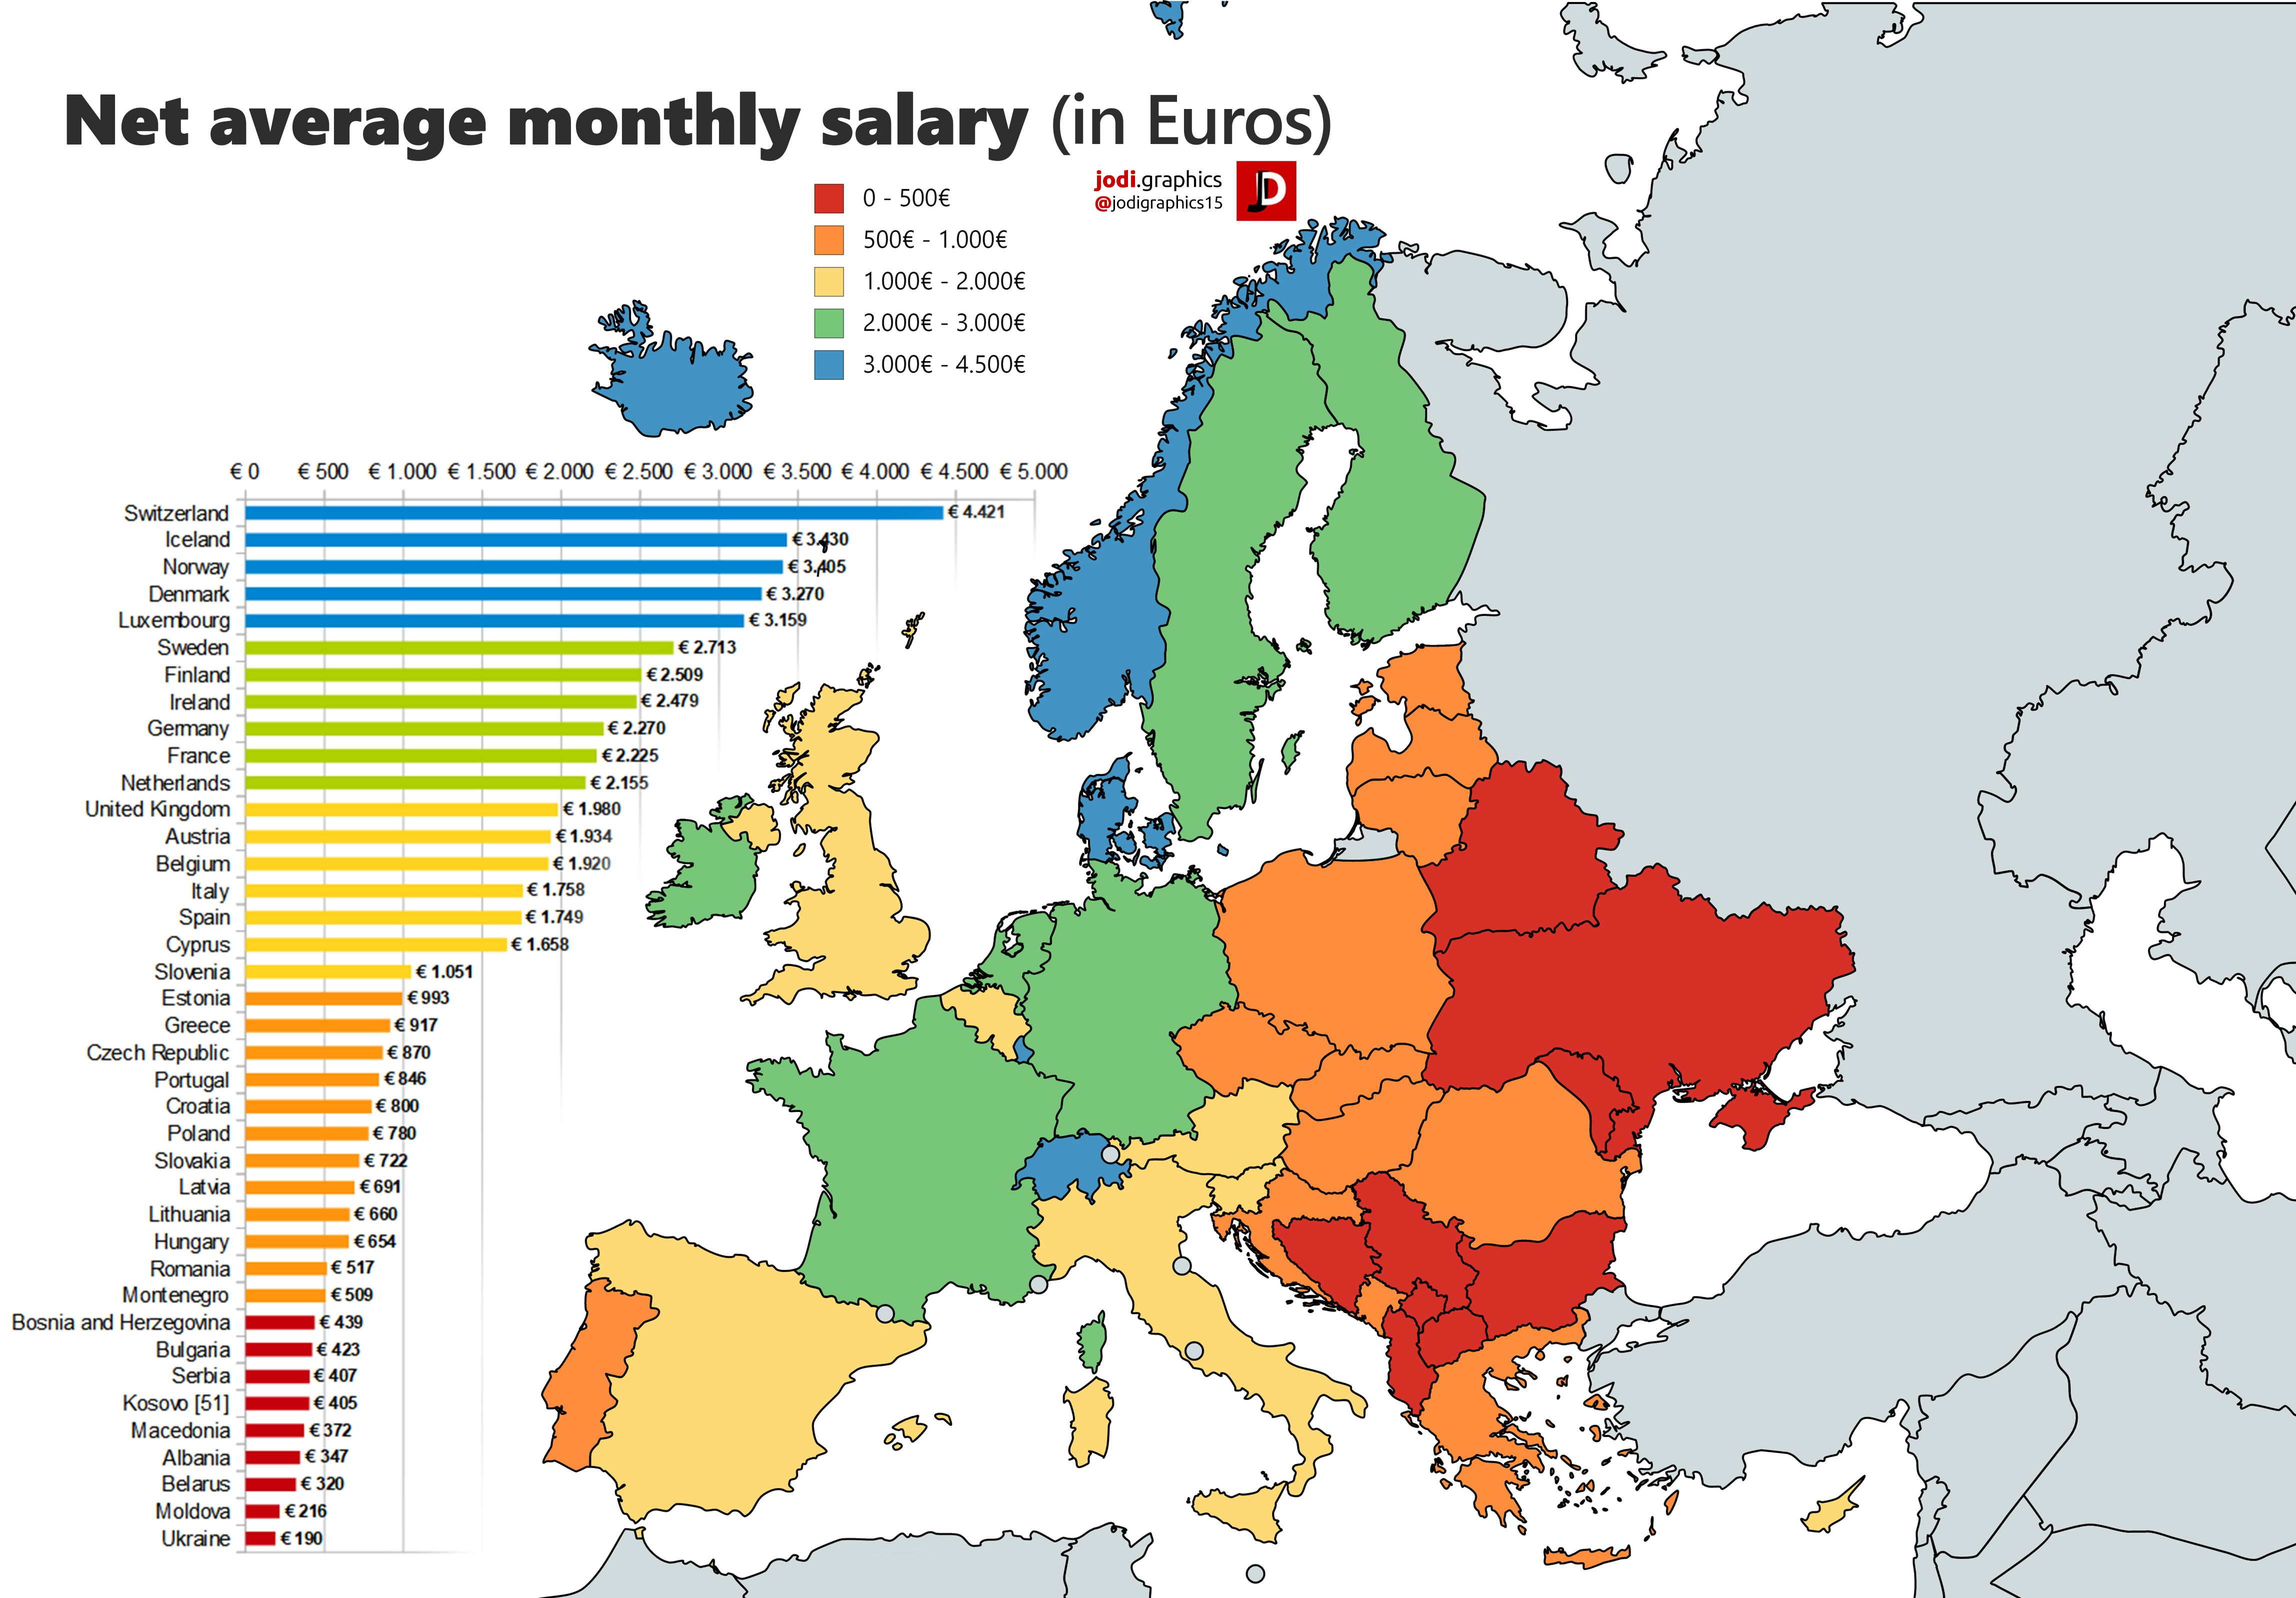 Net average monthly salary in Europe (2017) | European map ...